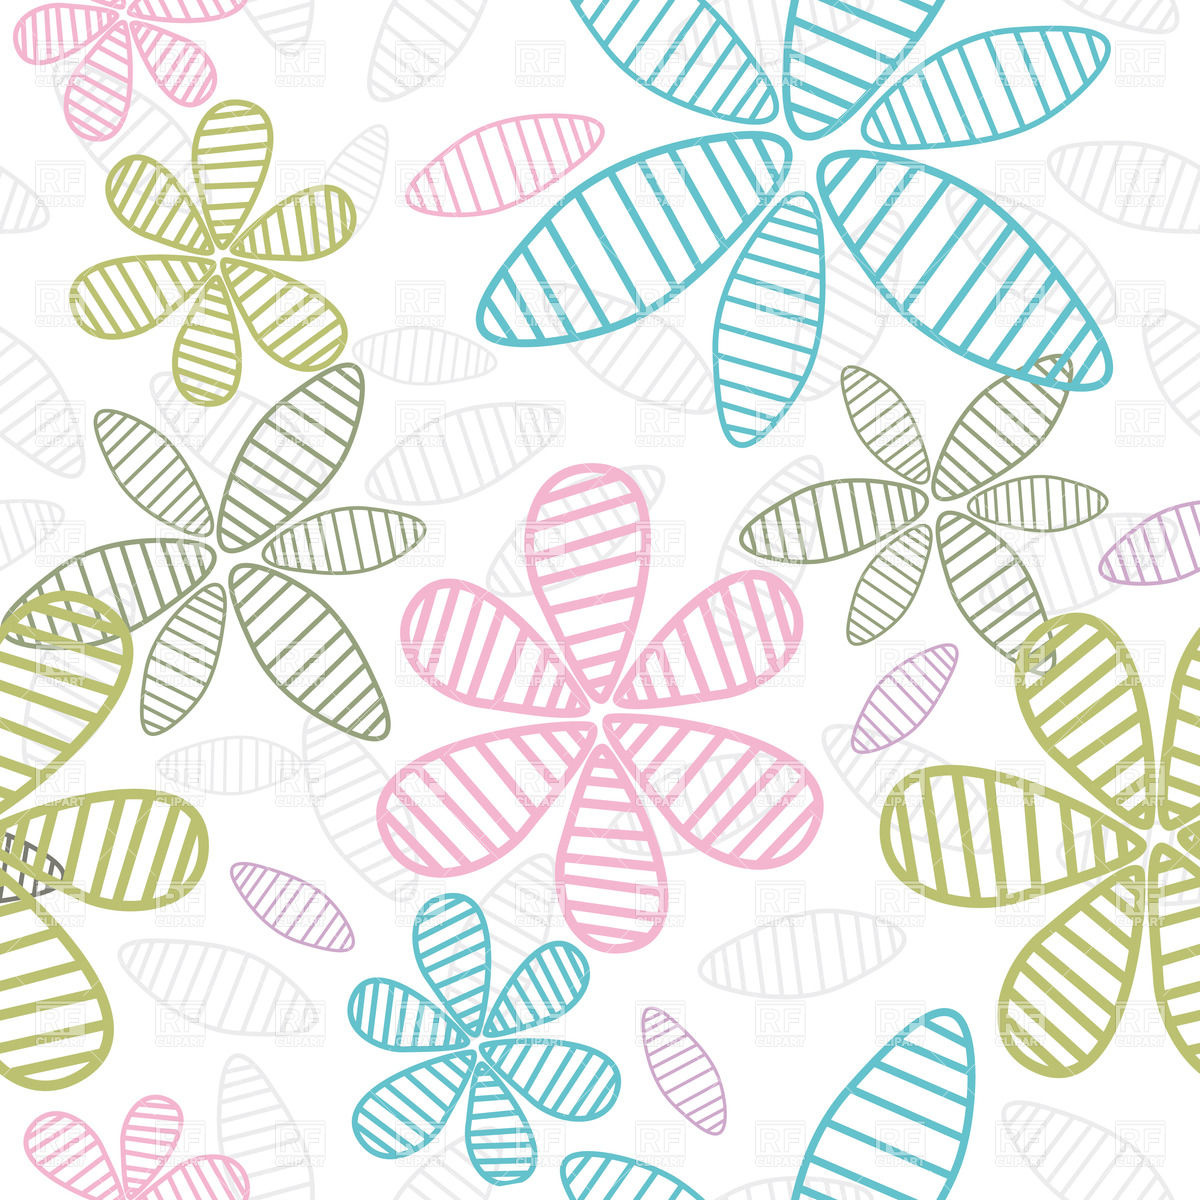 Cute Clipart Backgrounds.